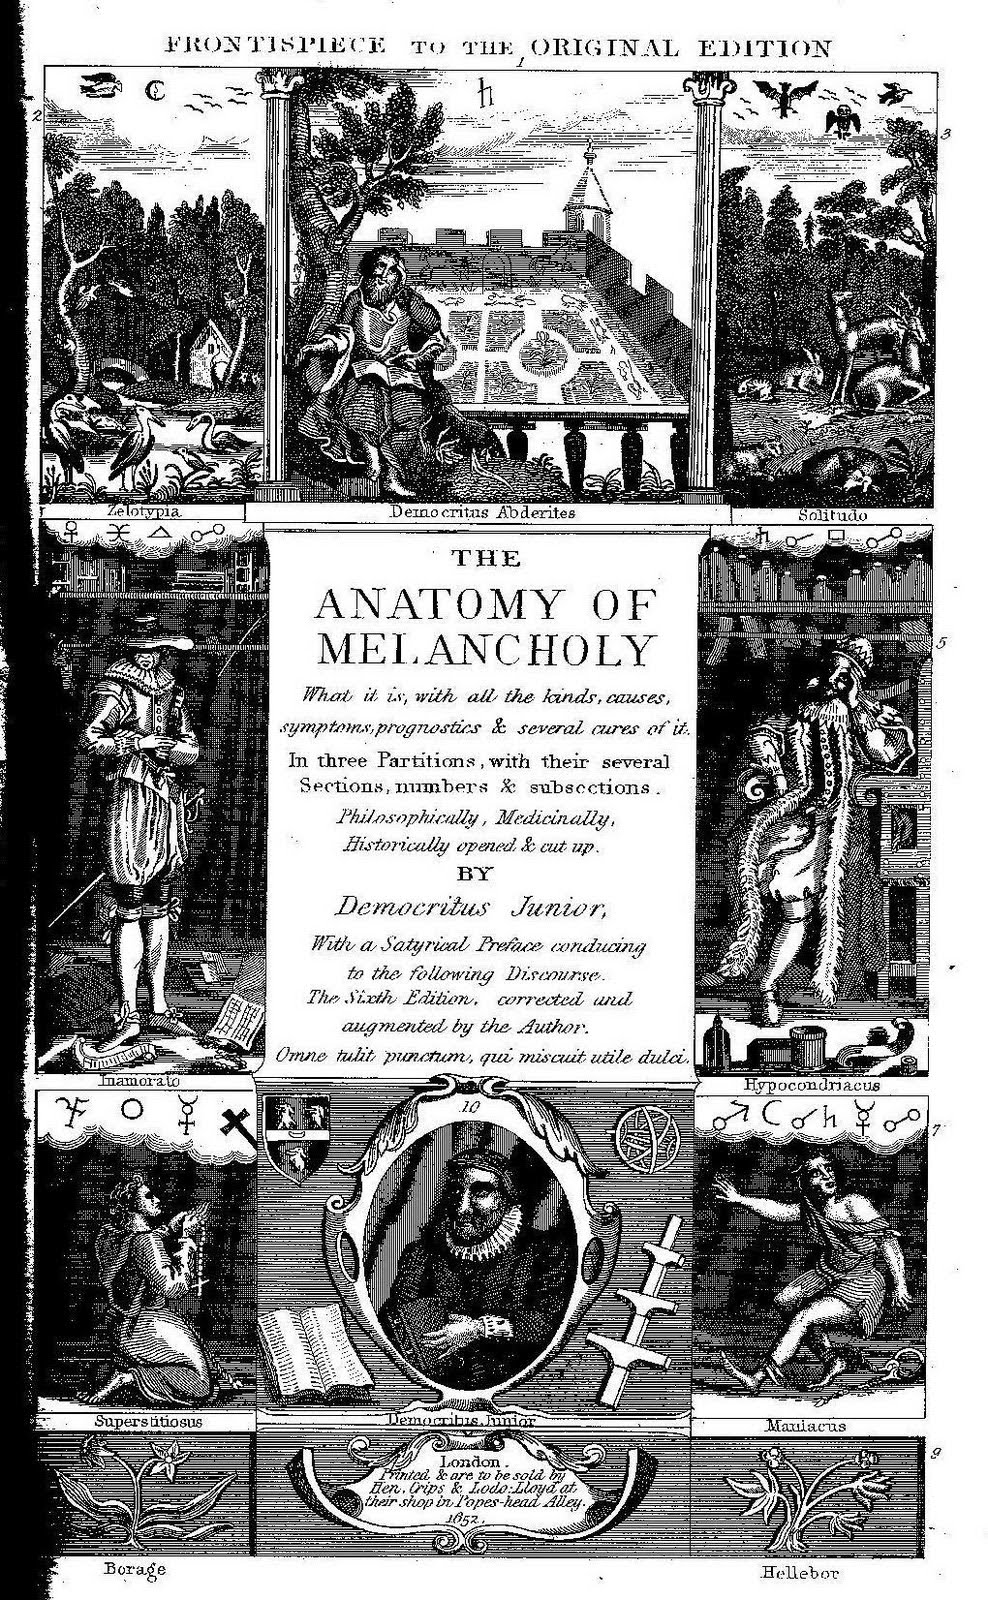 Frontispiece to original edition of The Anatomy of Meloncholy